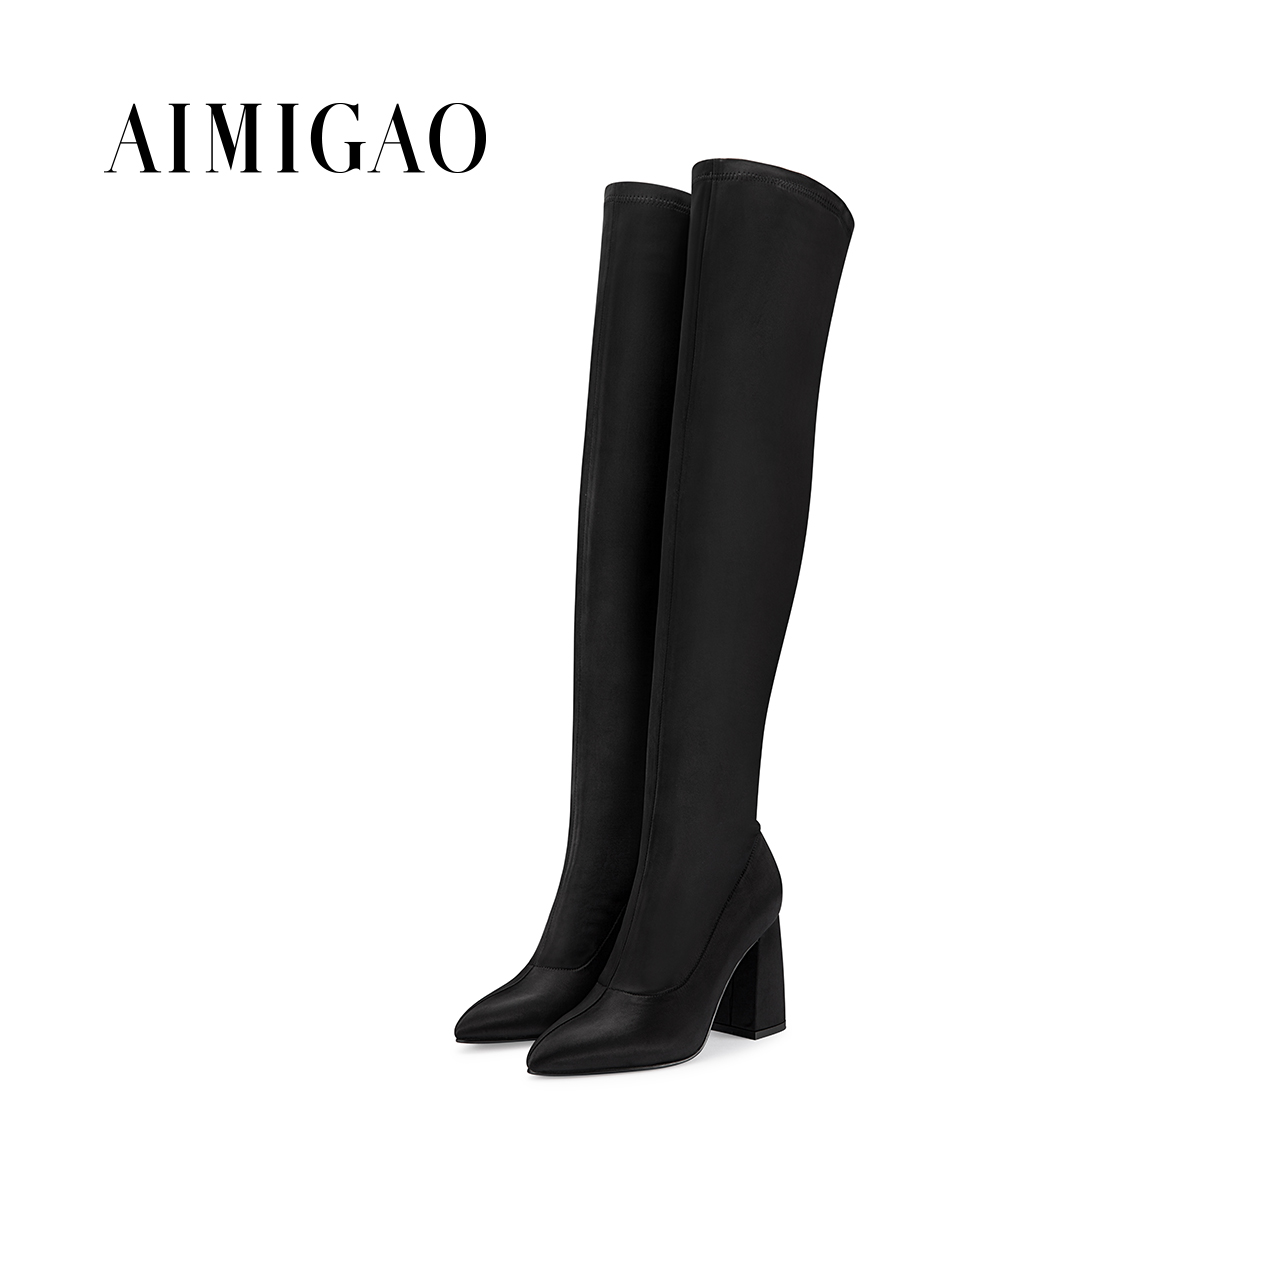 AIMIGAO fashion high boots pointed 2017 autumn new comfortable thick heel women boots Silk stretch slim fit sexy over knee boots qiu dong in fashionable boots sexy and comfortable women s shoes the new national style high heel heel thick heel